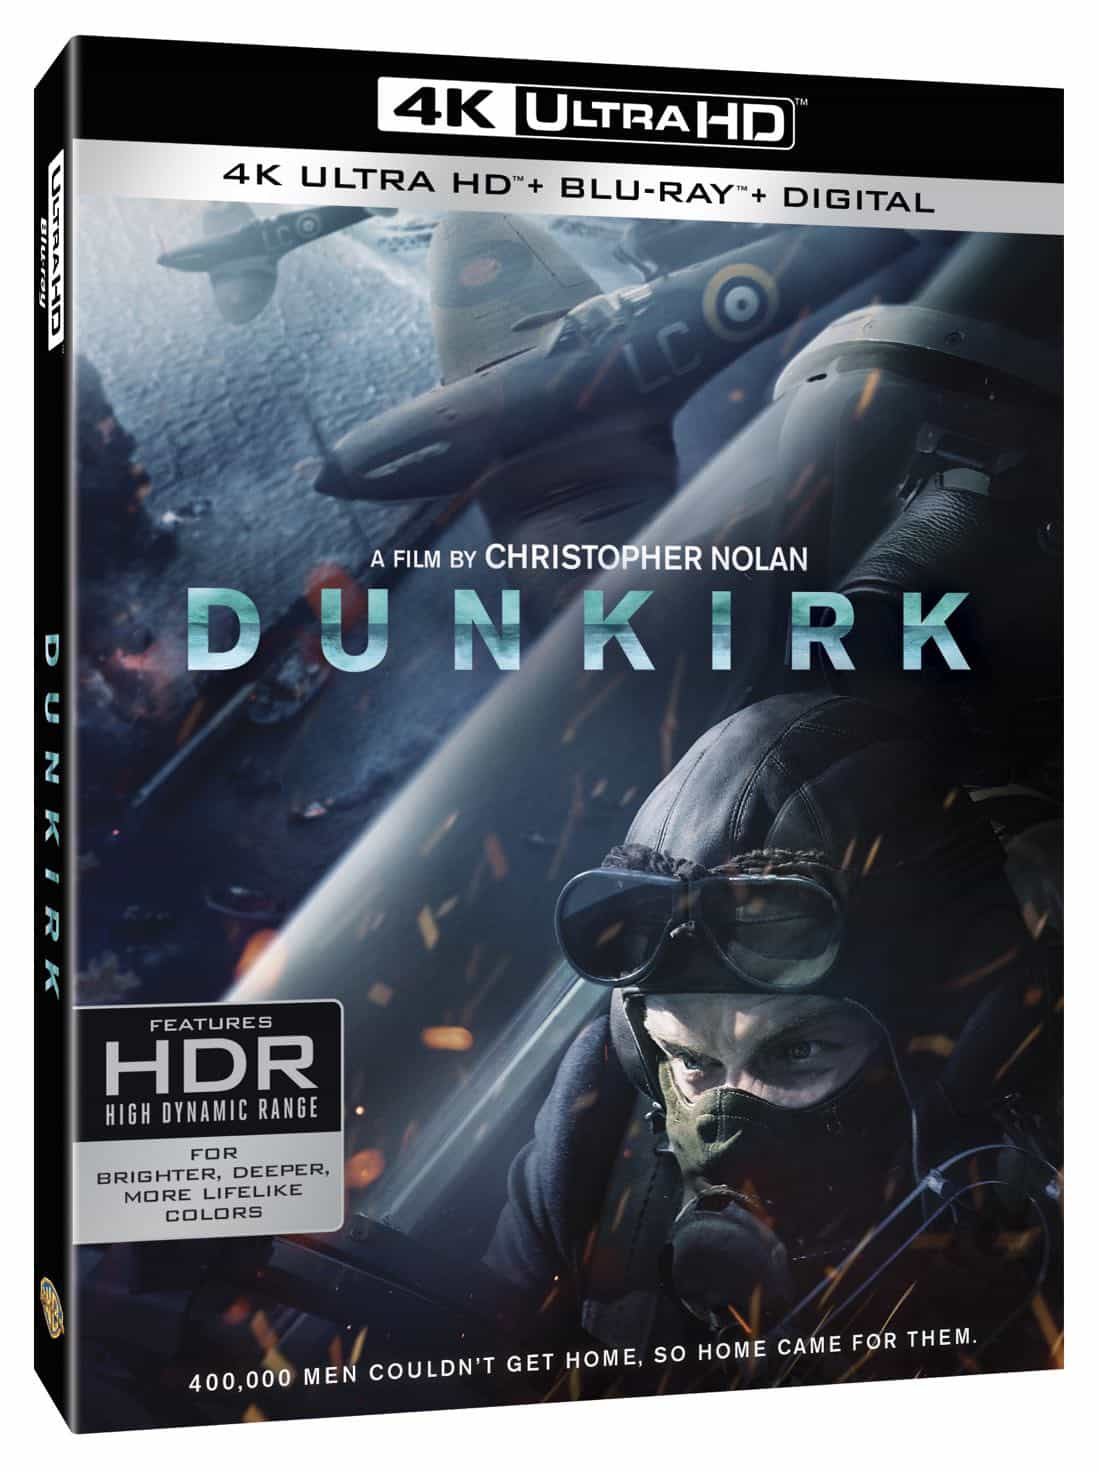 dunkirk blu ray 4k and dvd release details seat42f. Black Bedroom Furniture Sets. Home Design Ideas